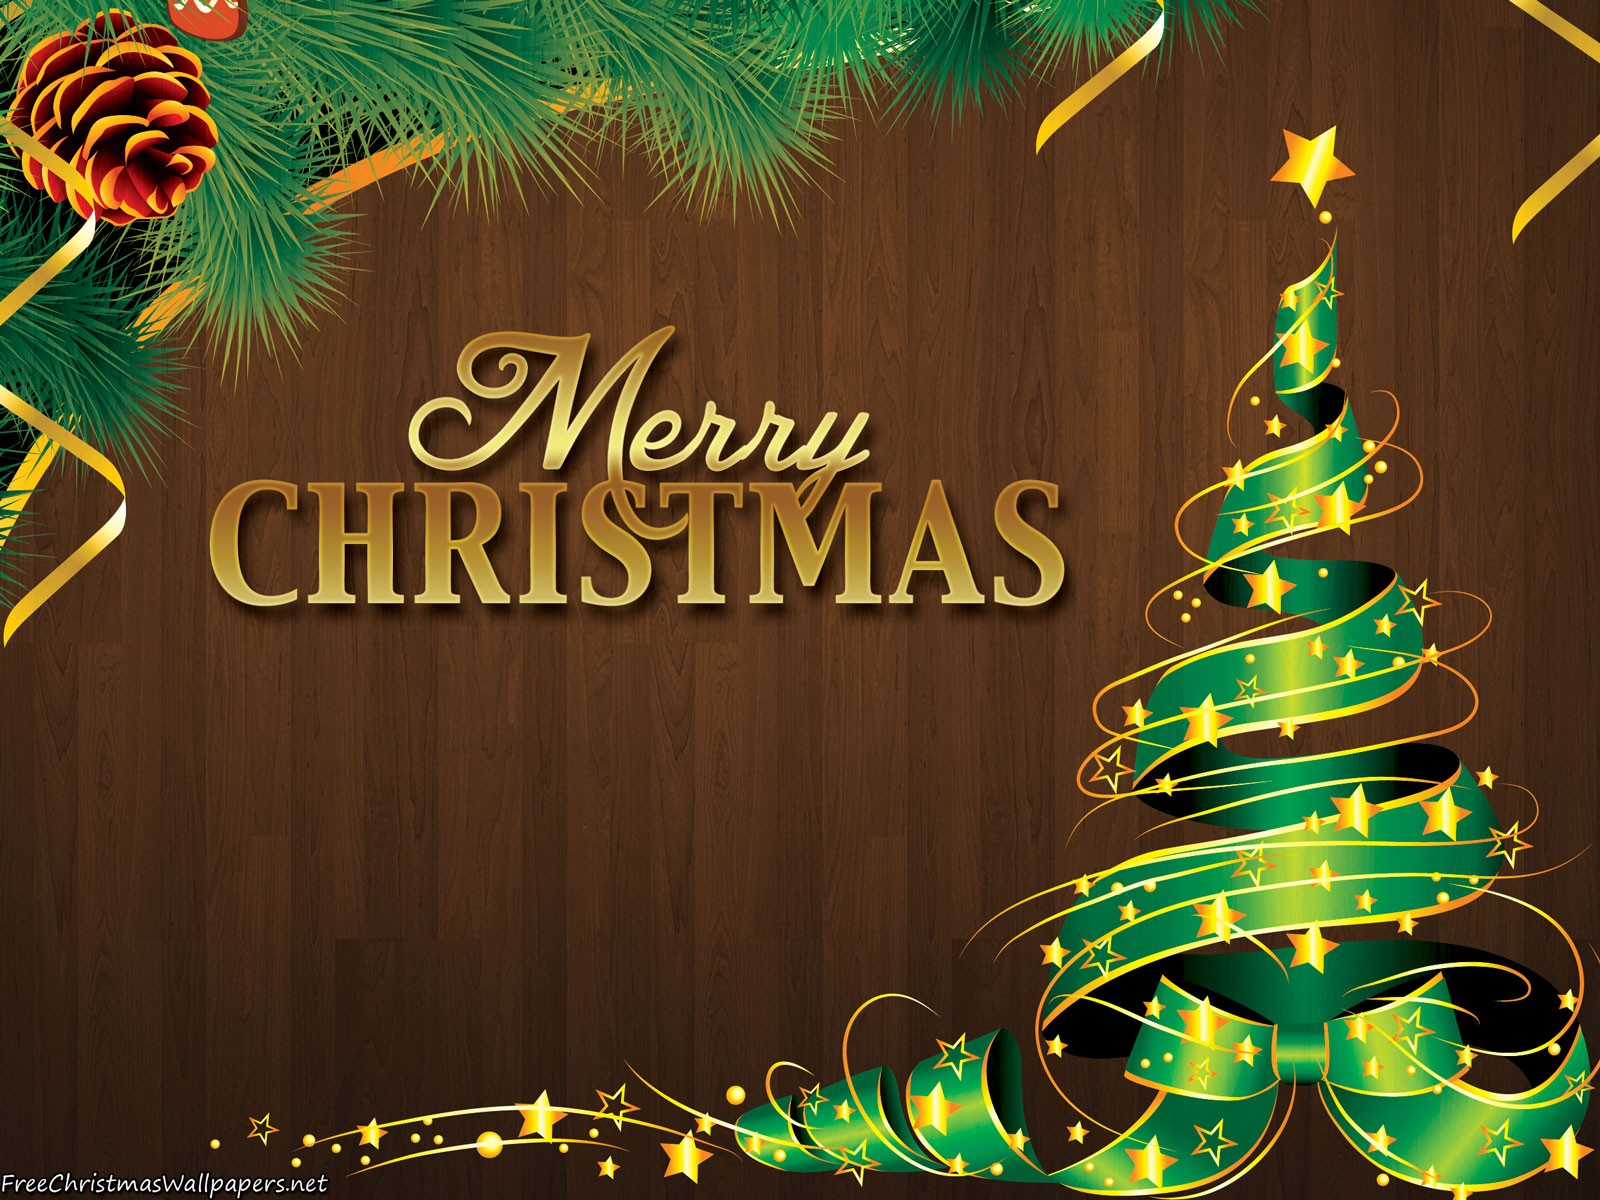 merry christmas wishes 1600x1200 - wallpaper